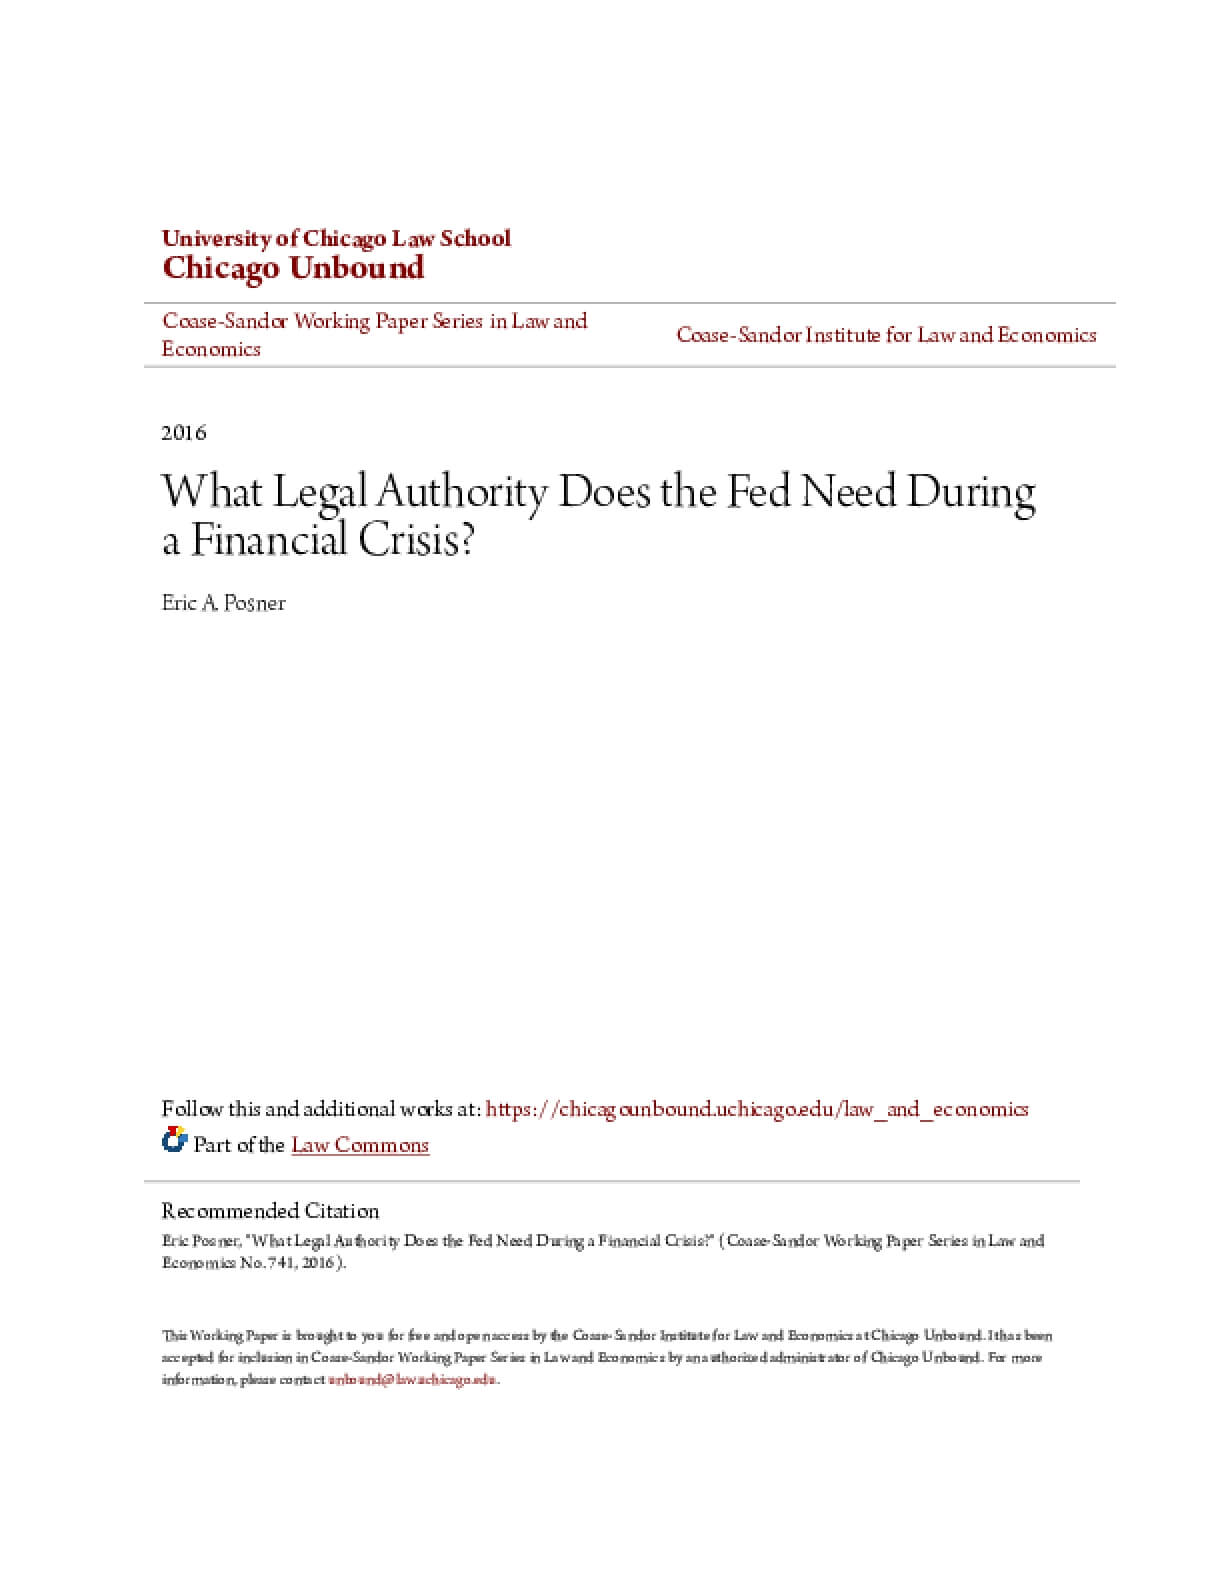 What Legal Authority Does the Fed Need During a Financial Crisis?